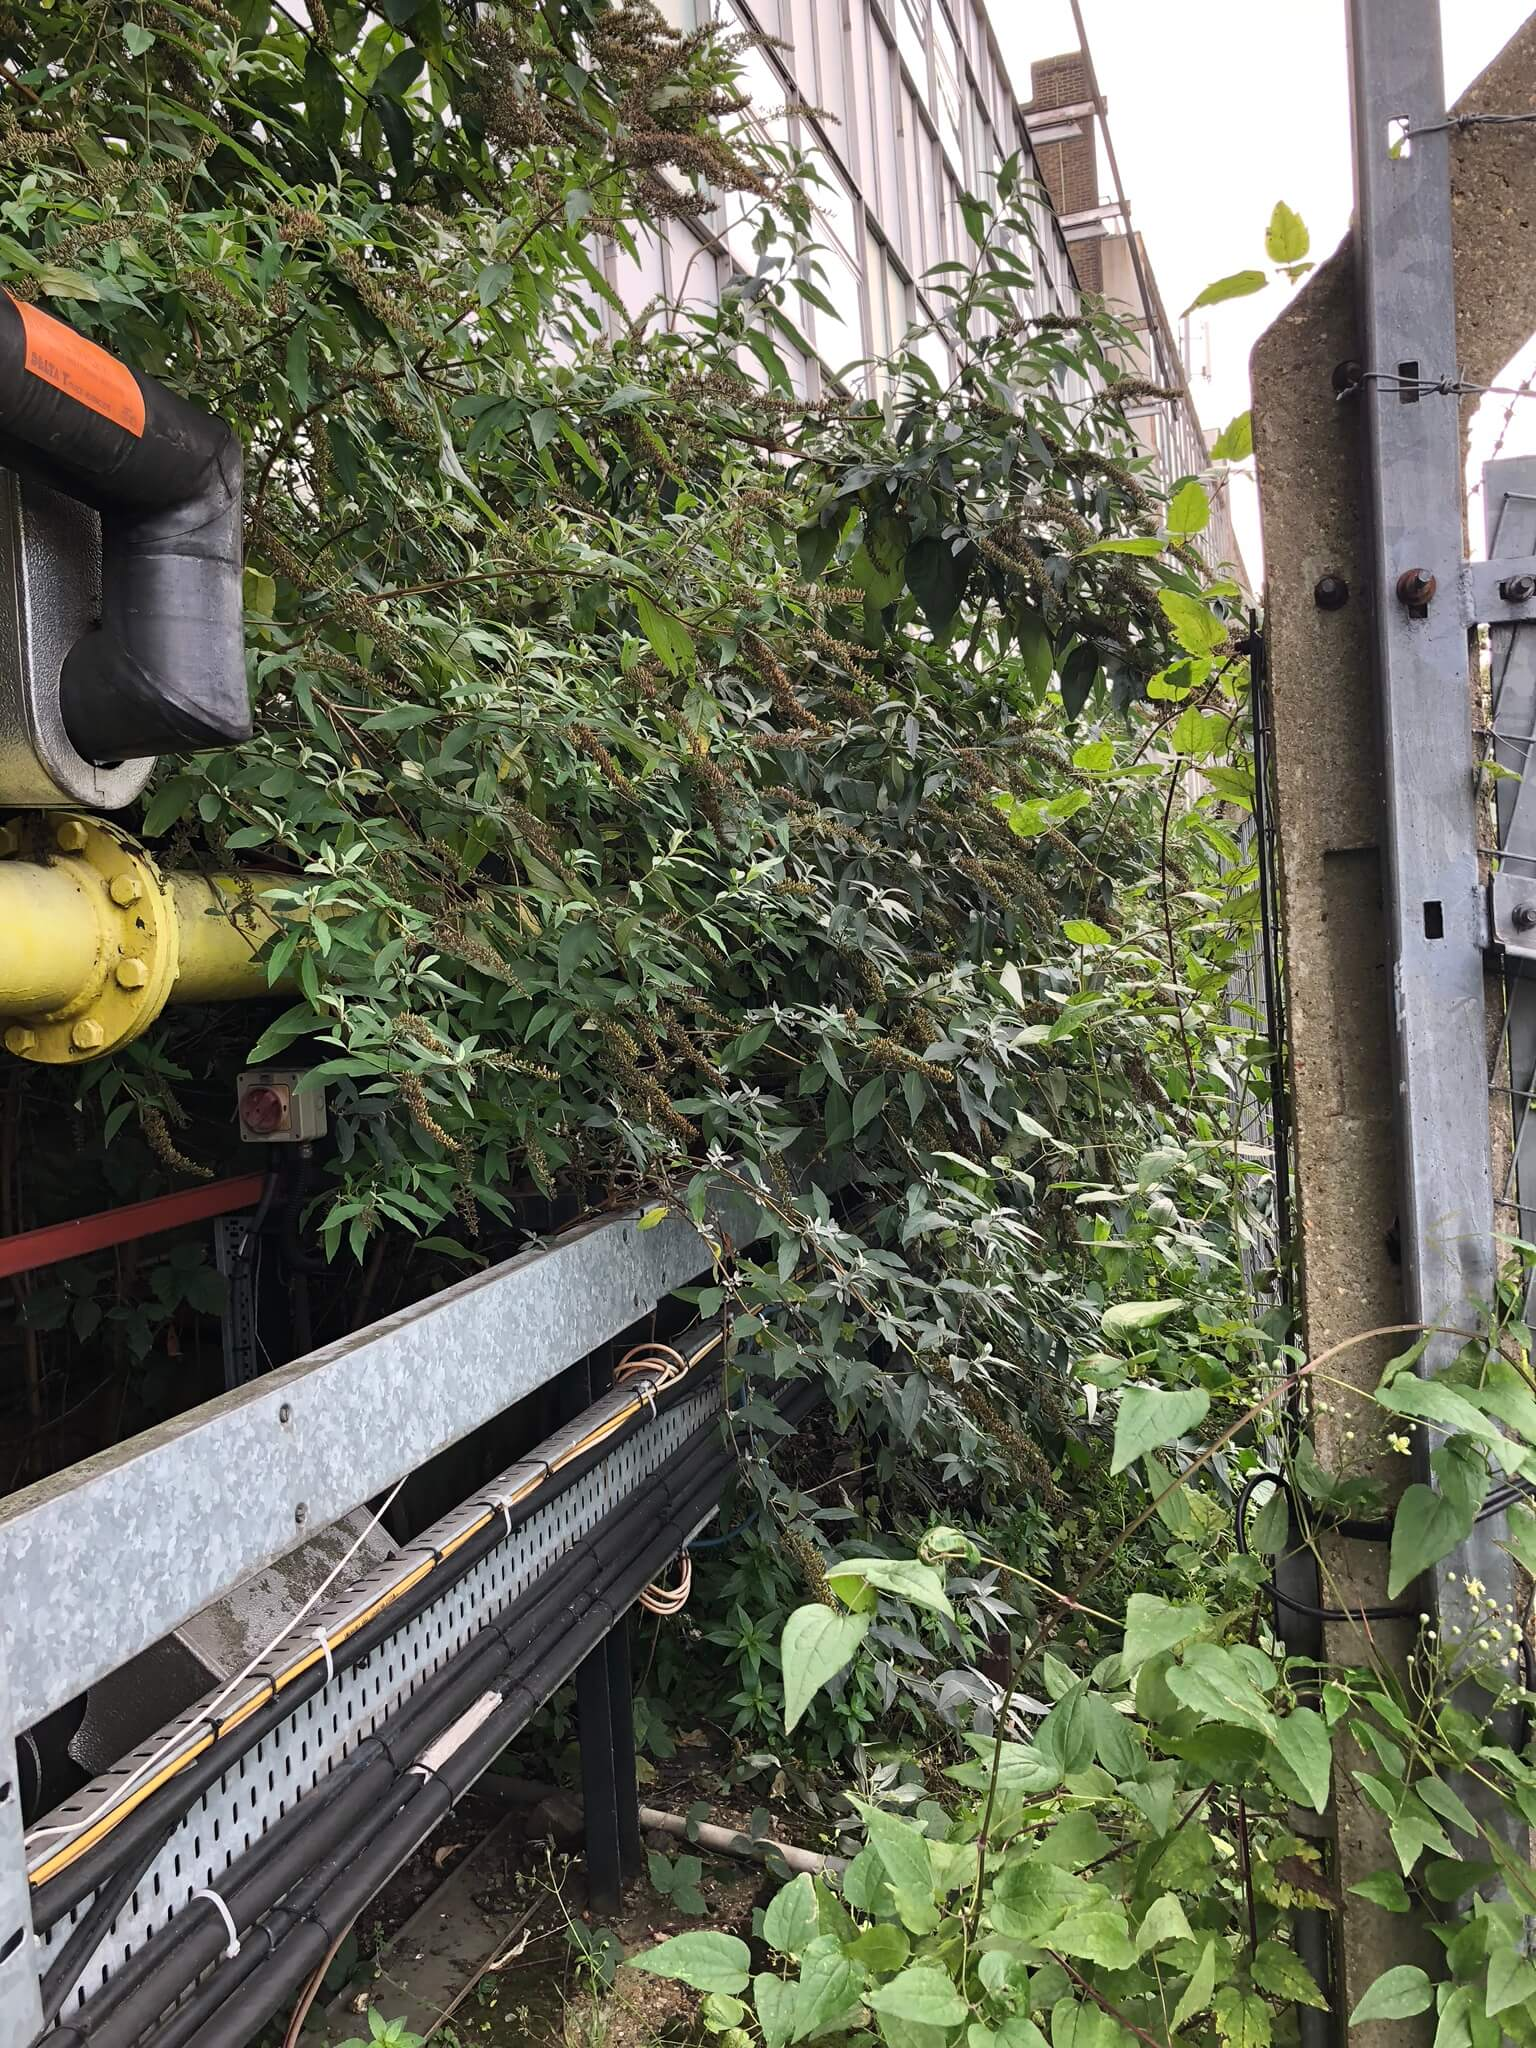 Buddleia misidentified for suspected Japanese Knotweed in London